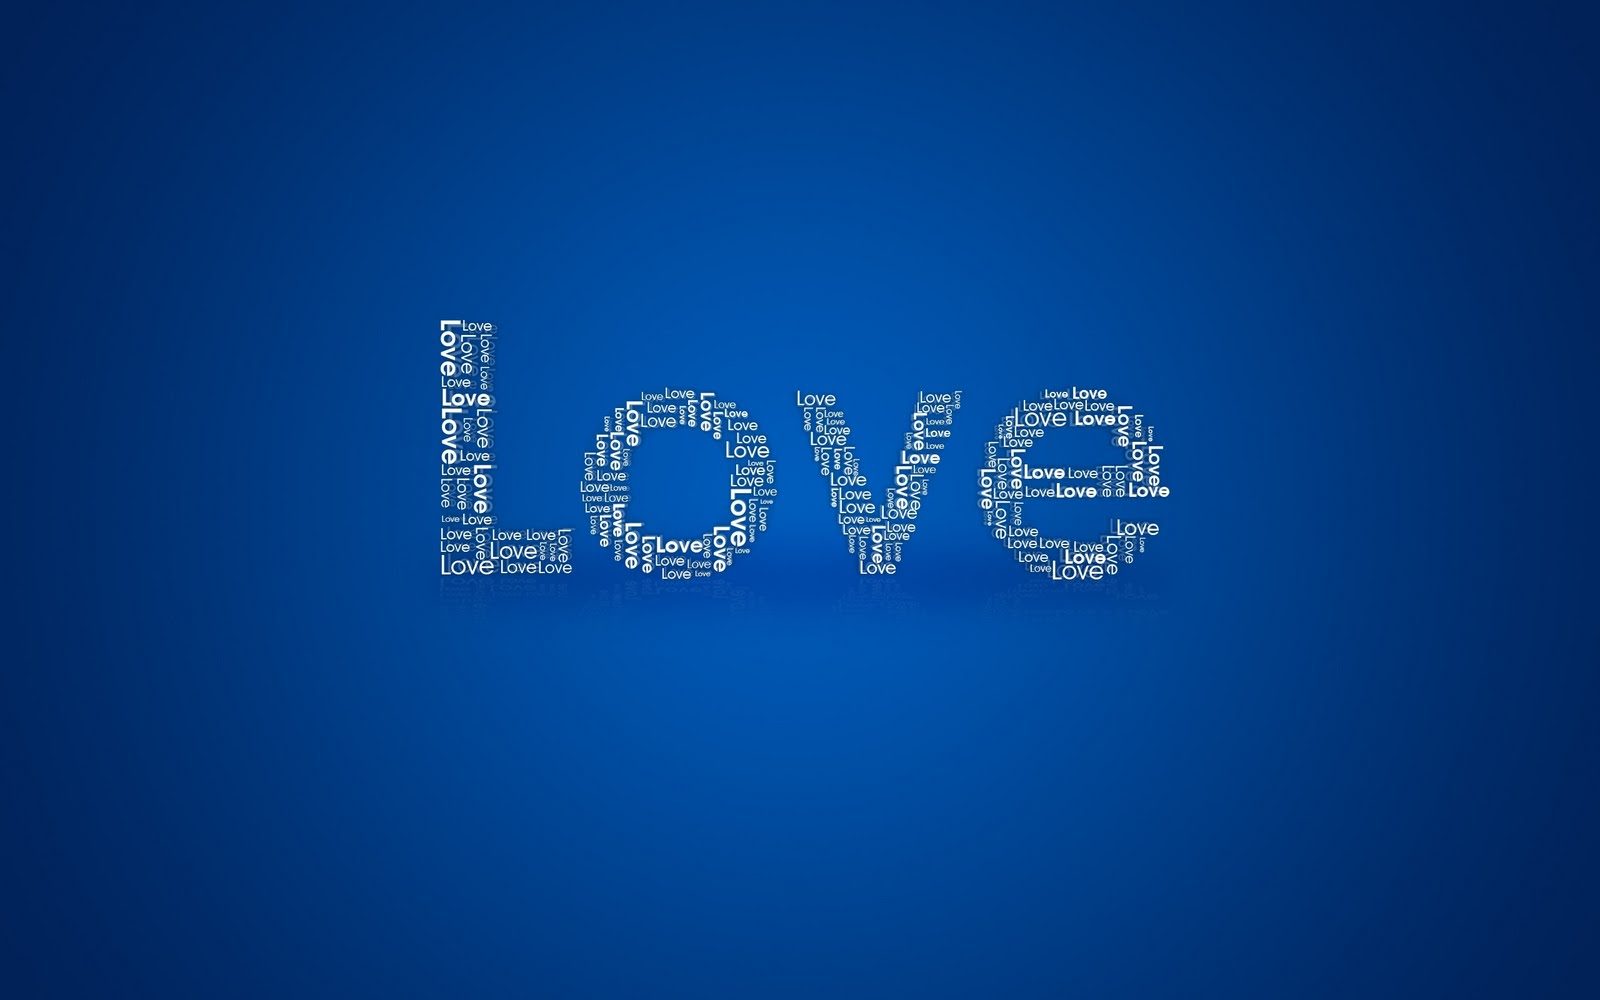 Blue one love download free